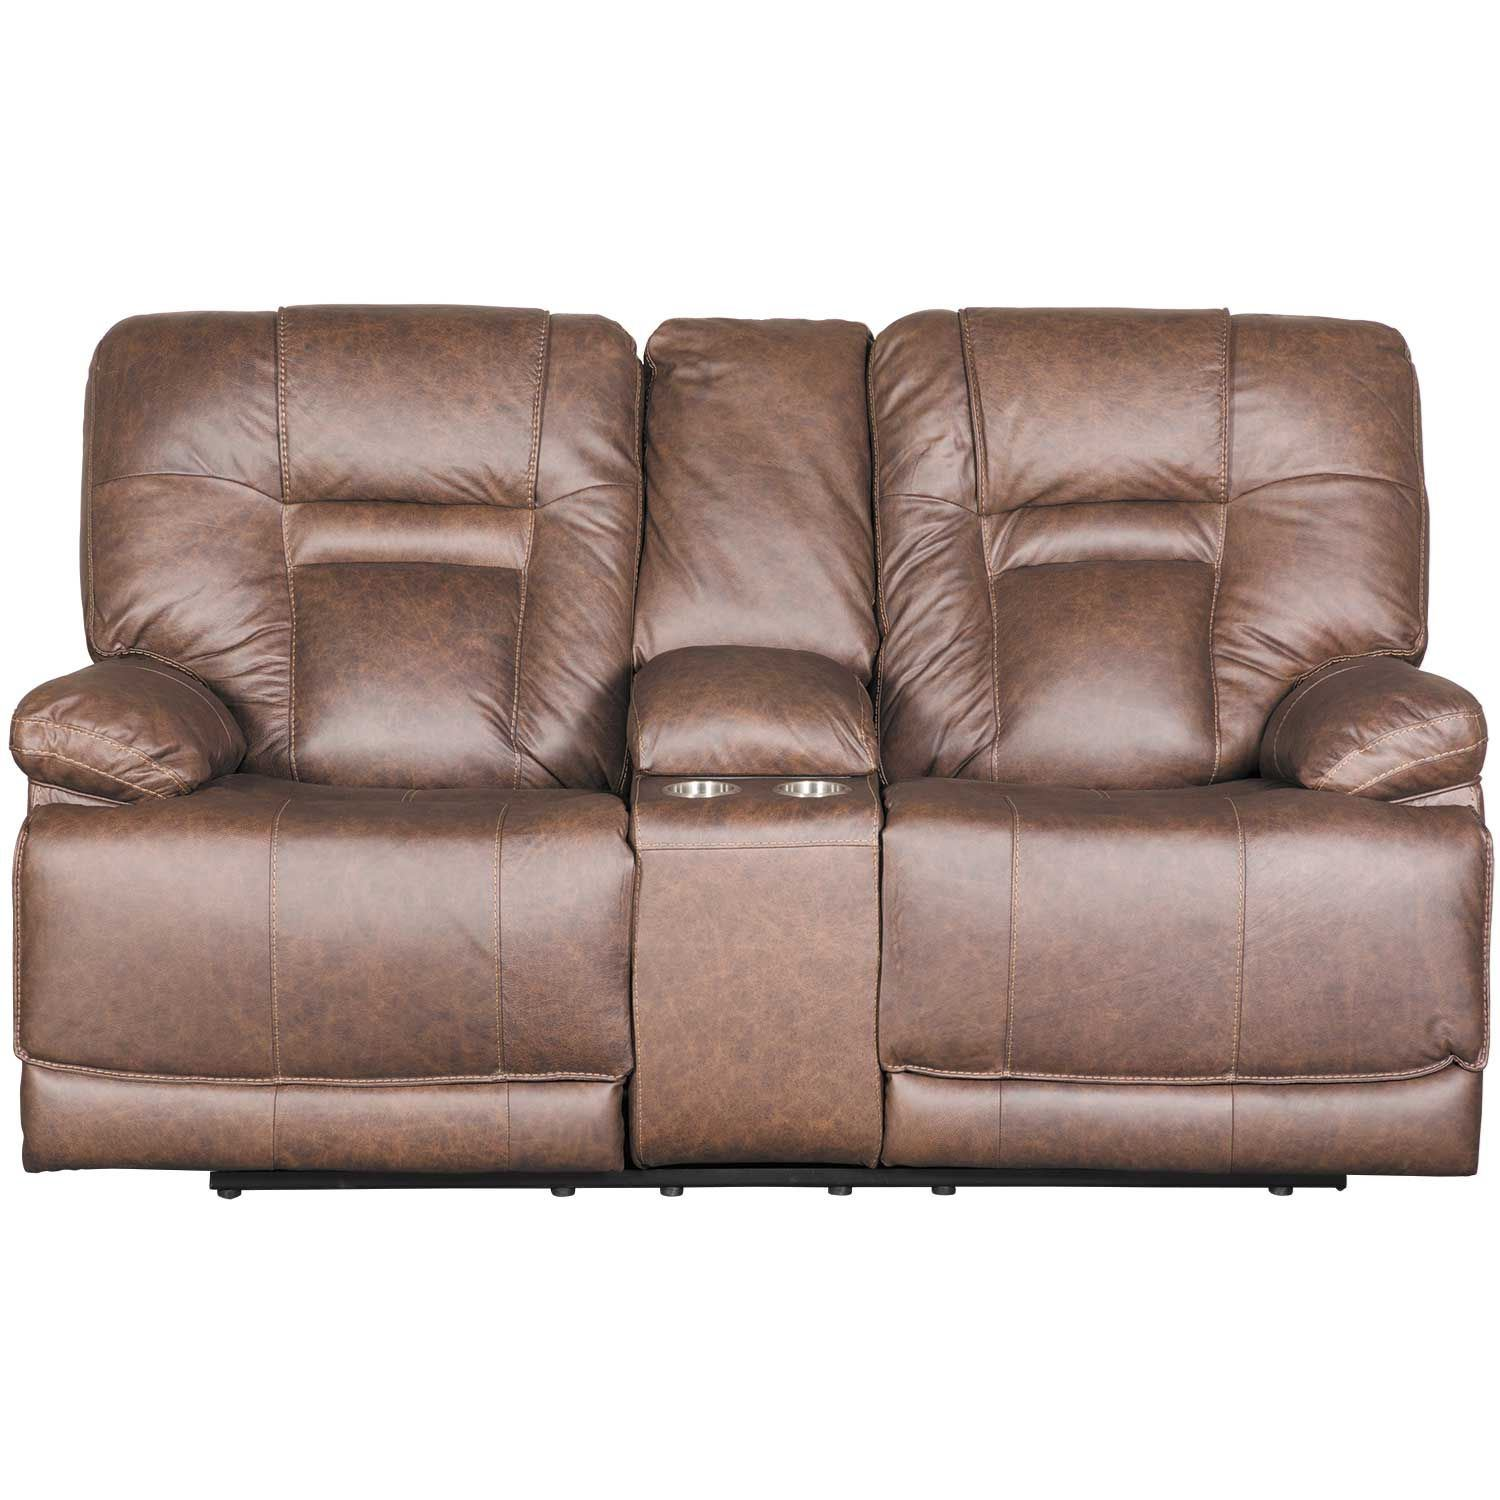 Enjoyable Wurstrow Umber Italian Leather Power Reclining Loveseat Gmtry Best Dining Table And Chair Ideas Images Gmtryco